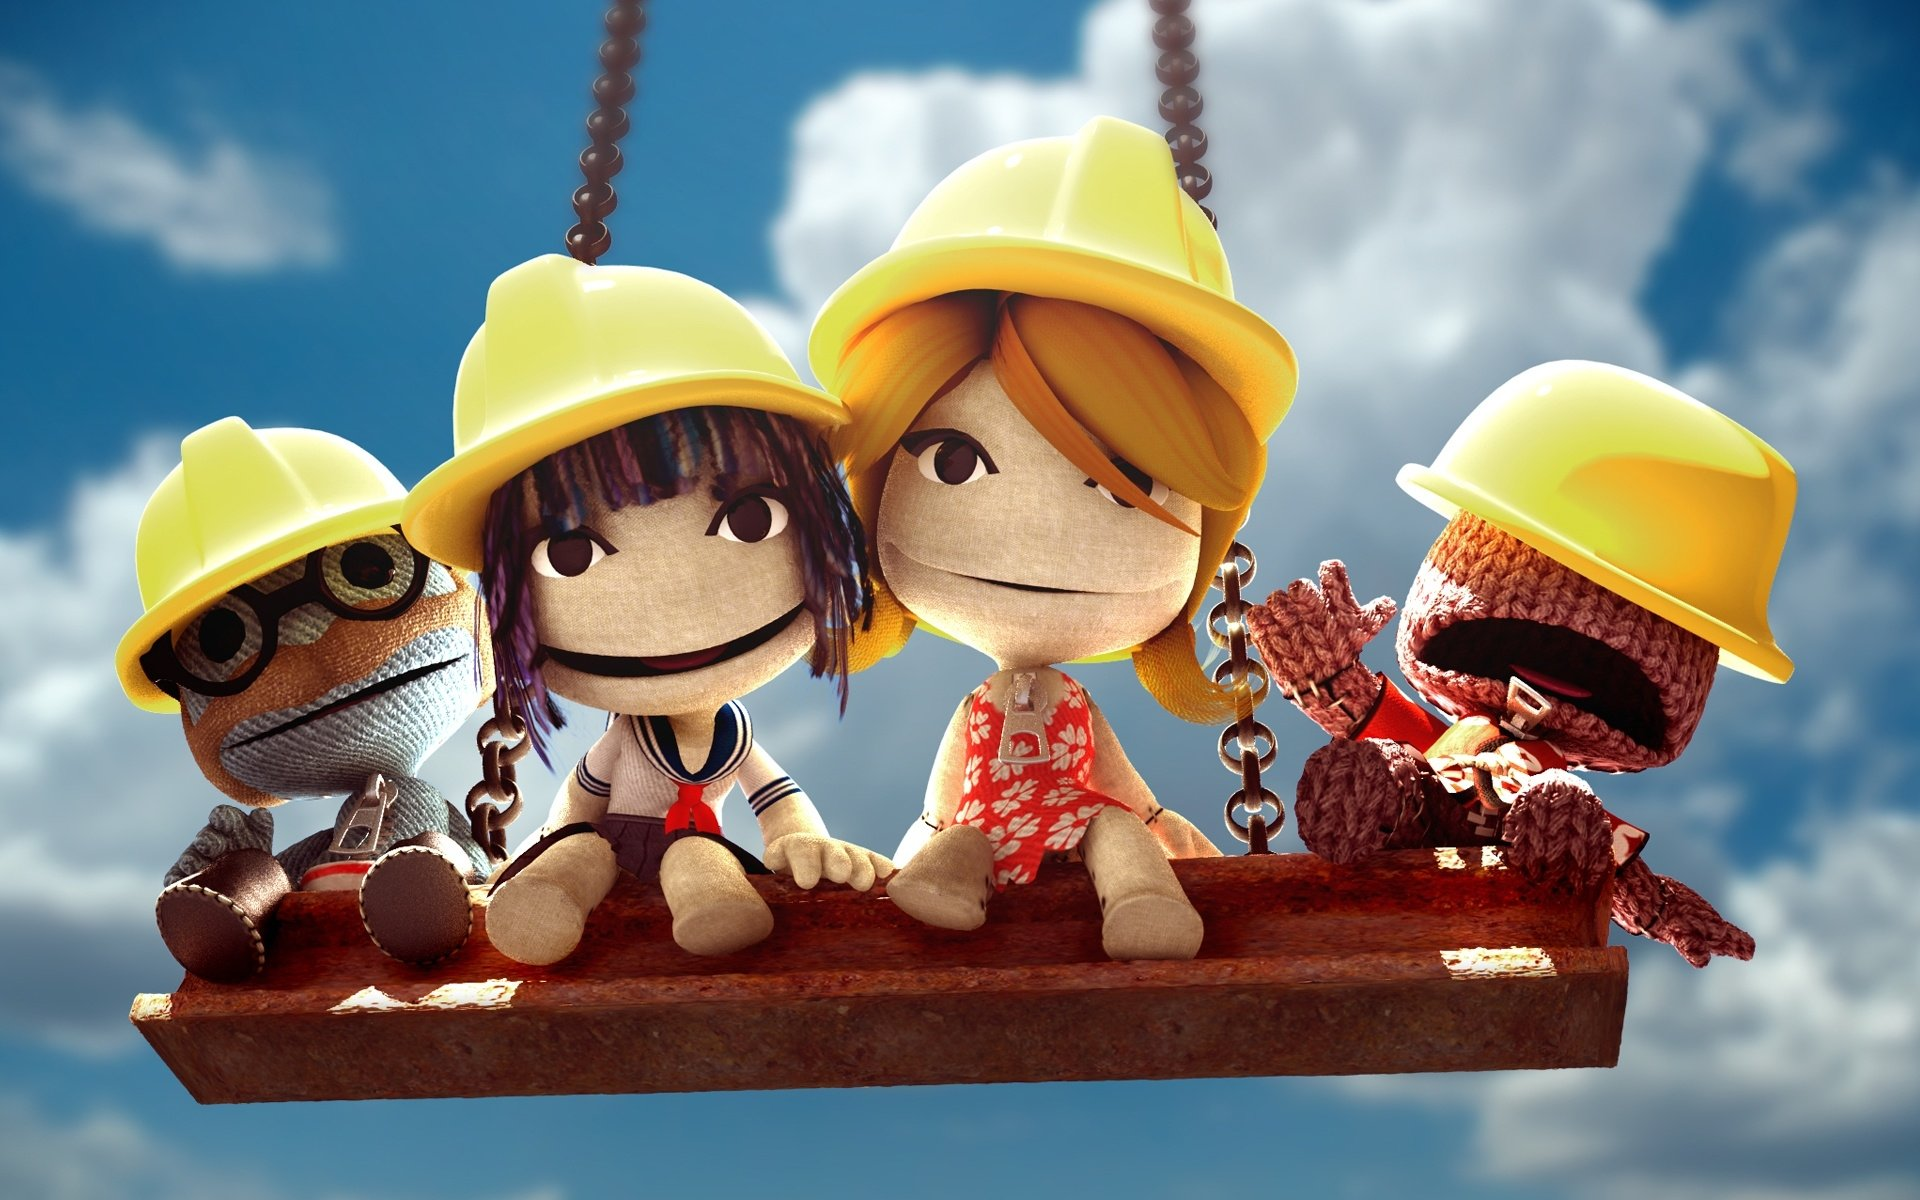 Download hd 1920x1200 LittleBigPlanet PC background ID:210487 for free